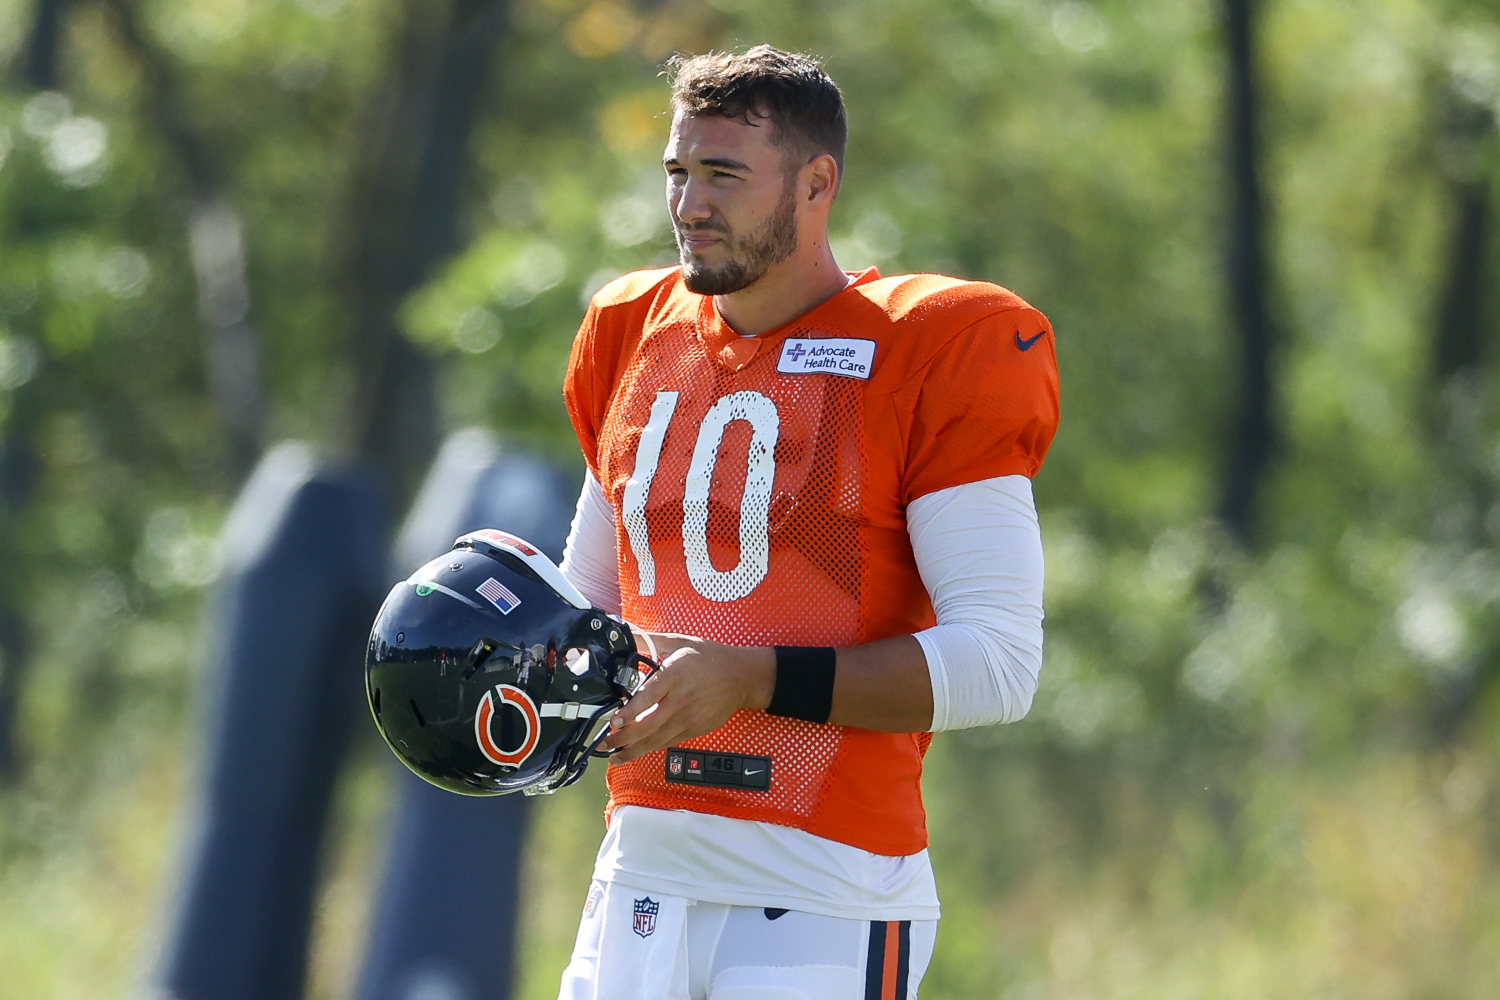 Tony Dungy had a surprising comment about Mitchell Trubisky